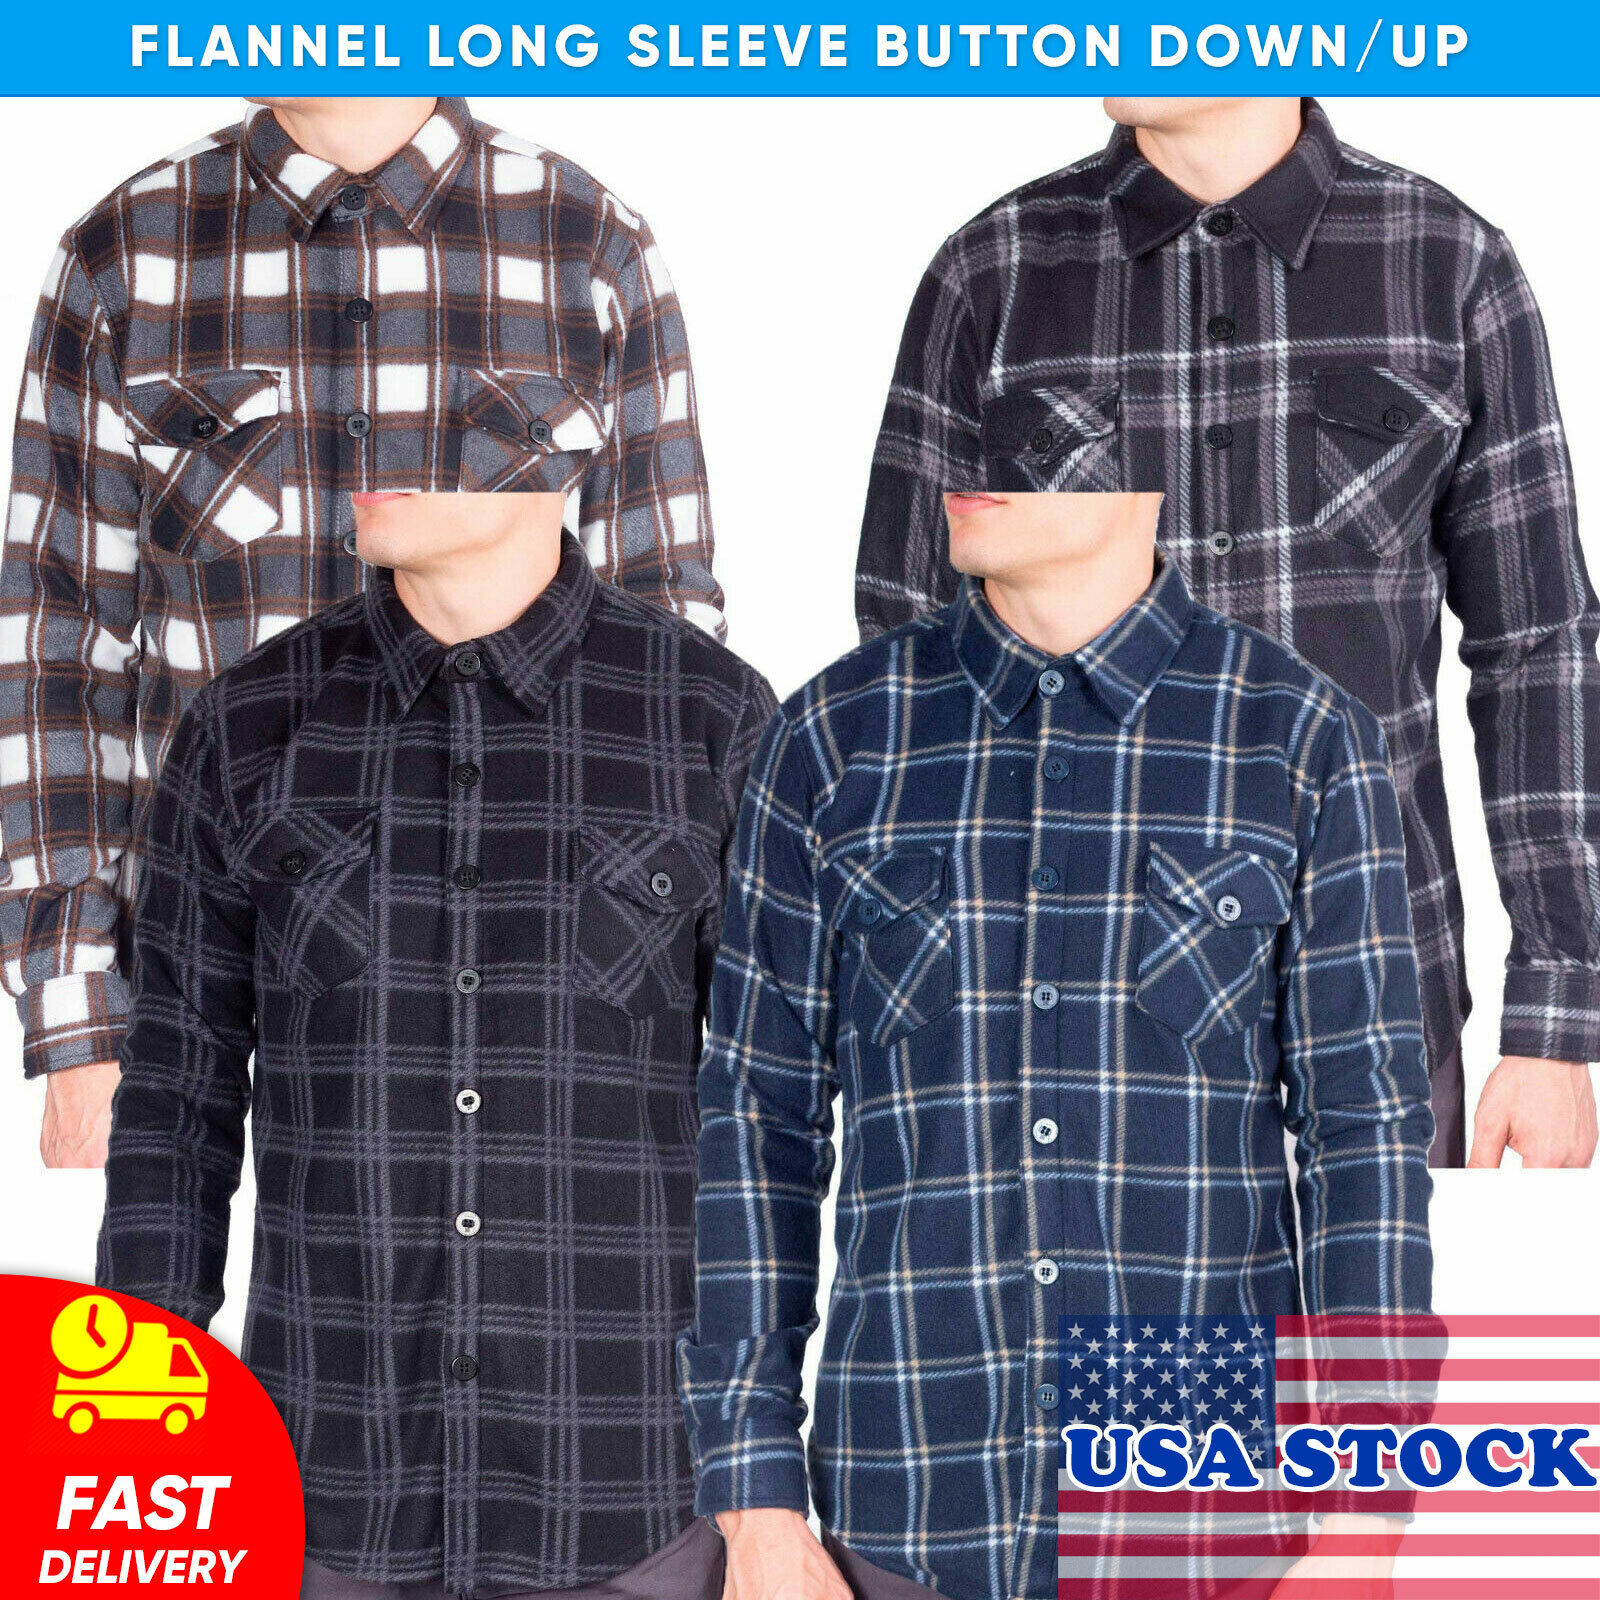 Visive Mens Flannel Shirt Long Sleeve Button Down Up Heavy F